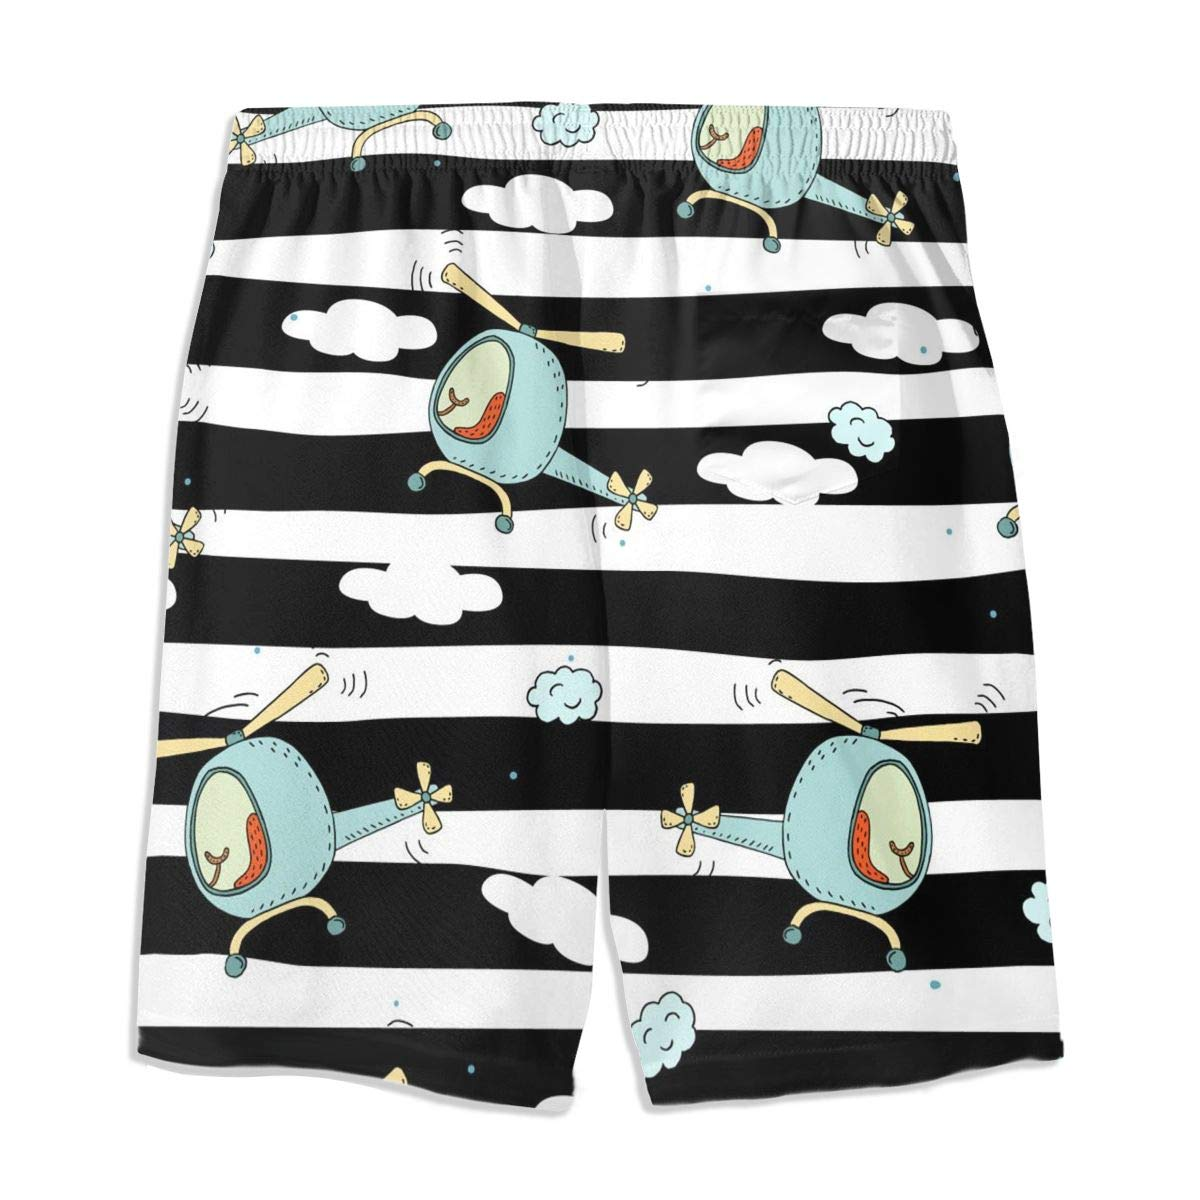 Mens Swim Trunks Blue Helicopter Cartoon Printed Beach Board Shorts with Pockets Cool Novelty Bathing Suits for Teen Boys